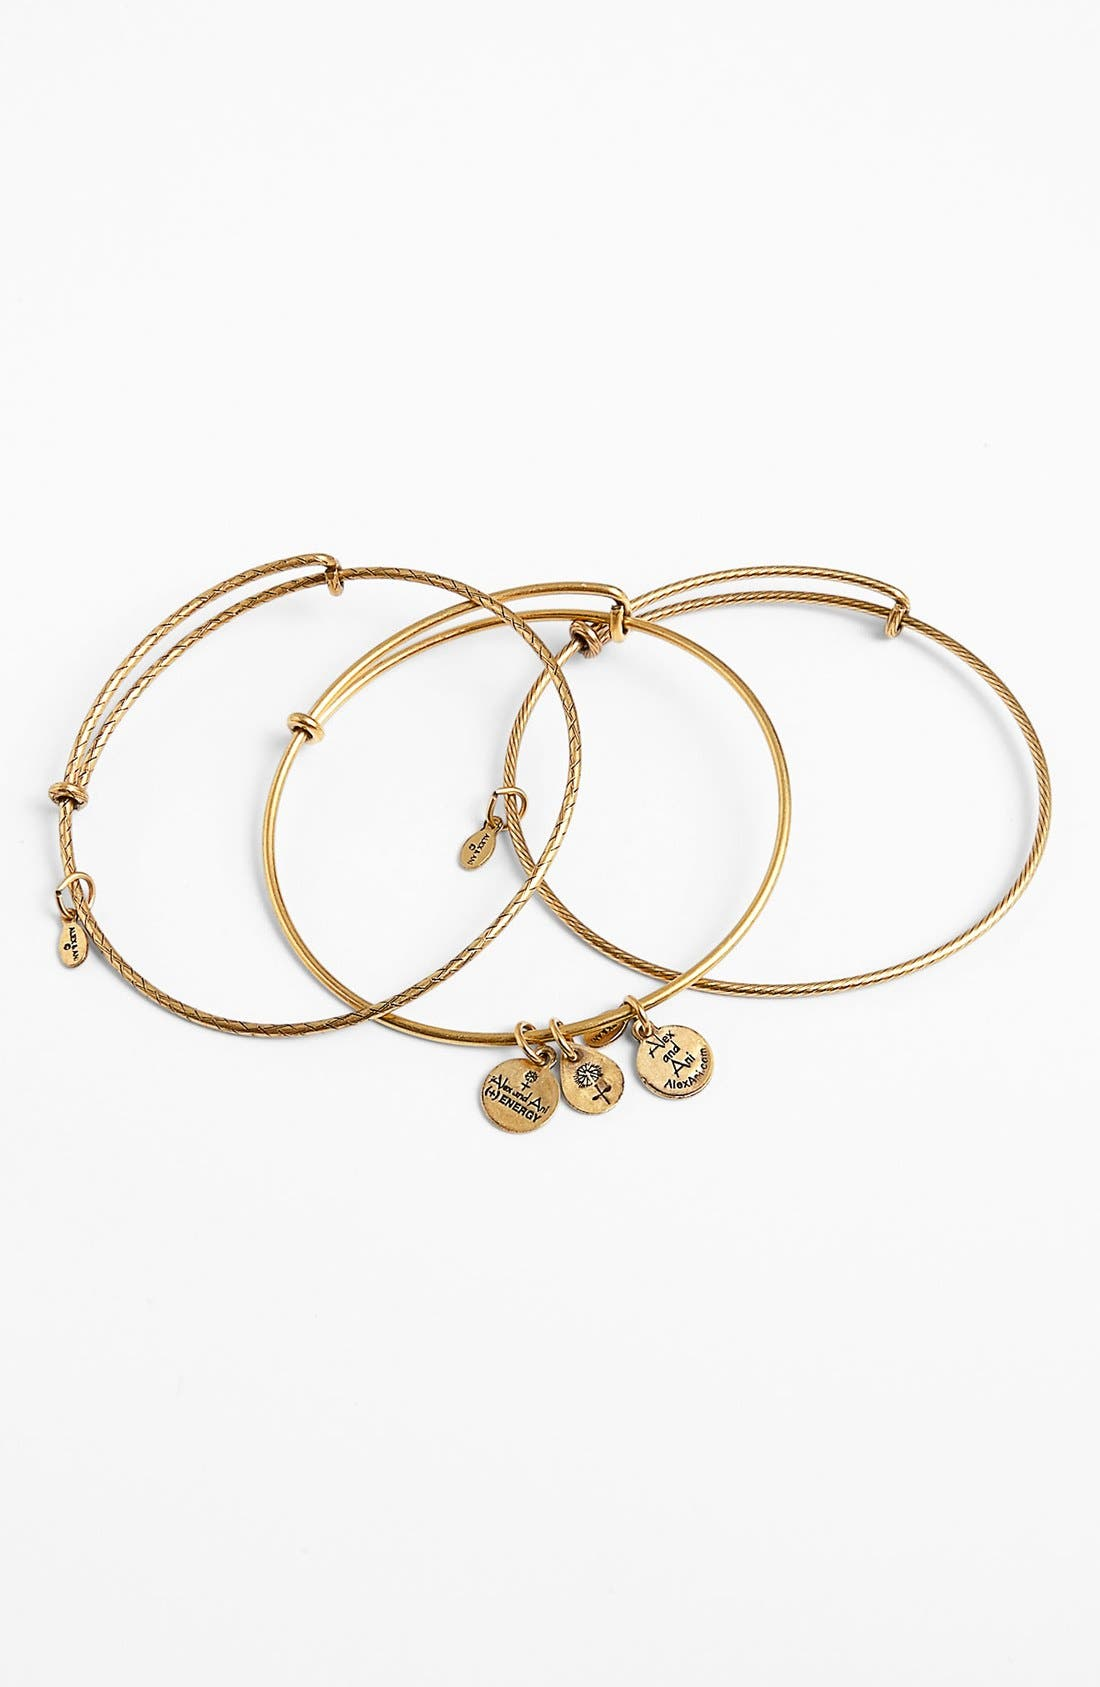 Alternate Image 1 Selected - Alex and Ani 'Energy' Adjustable Wire Bangles (Set of 3)